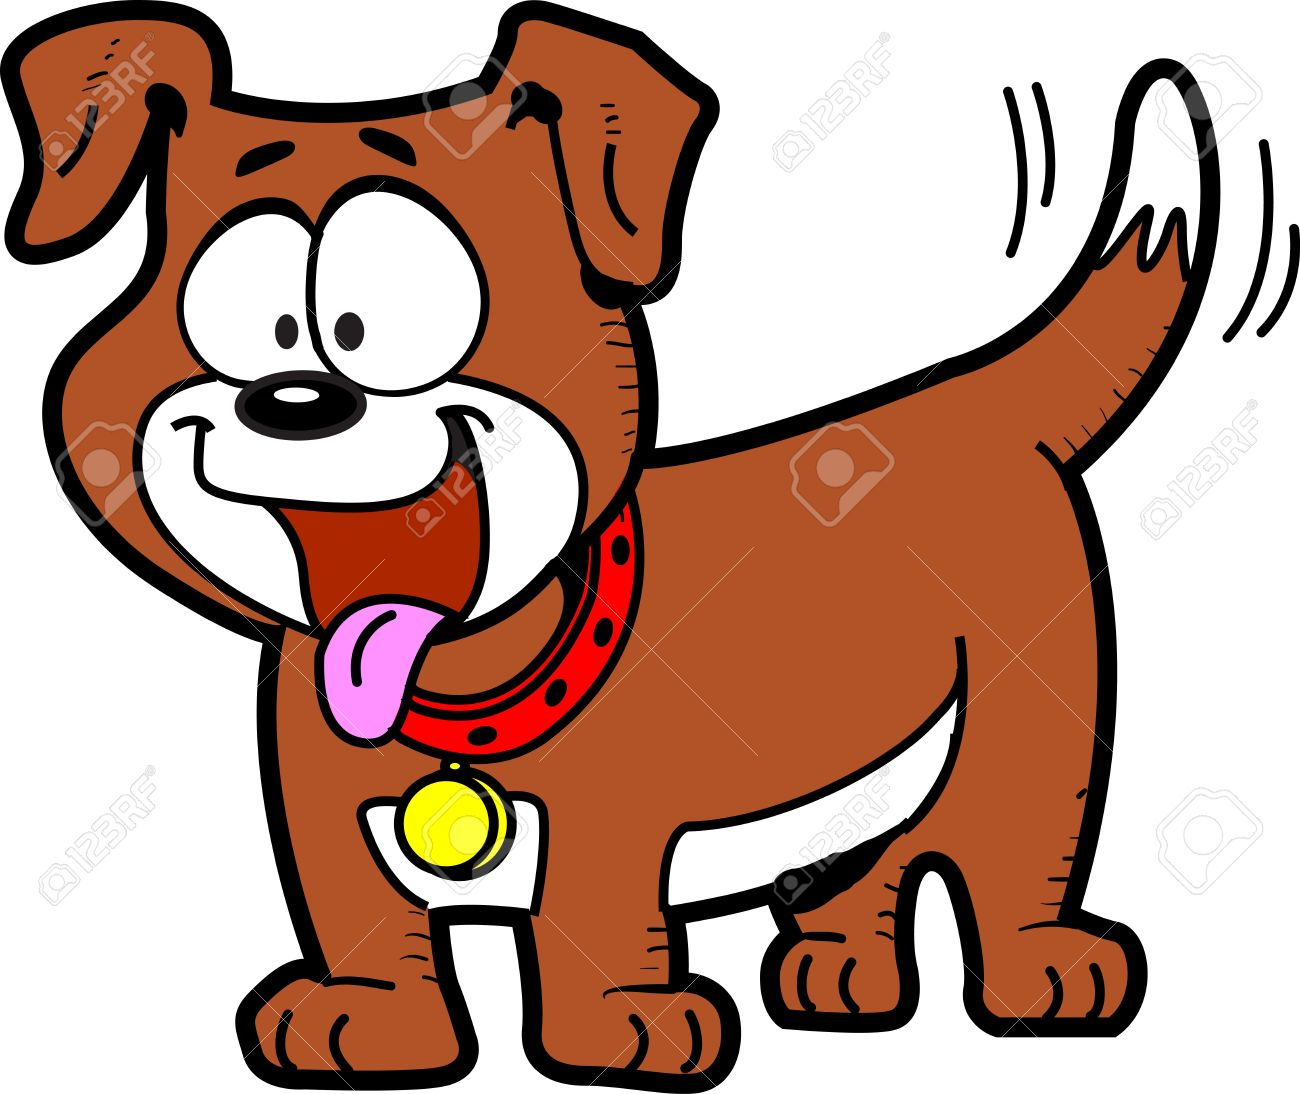 Clipart dog tail png black and white library Happy Cartoon Dog With Tongue Out And Wagging His Tail Royalty ... png black and white library